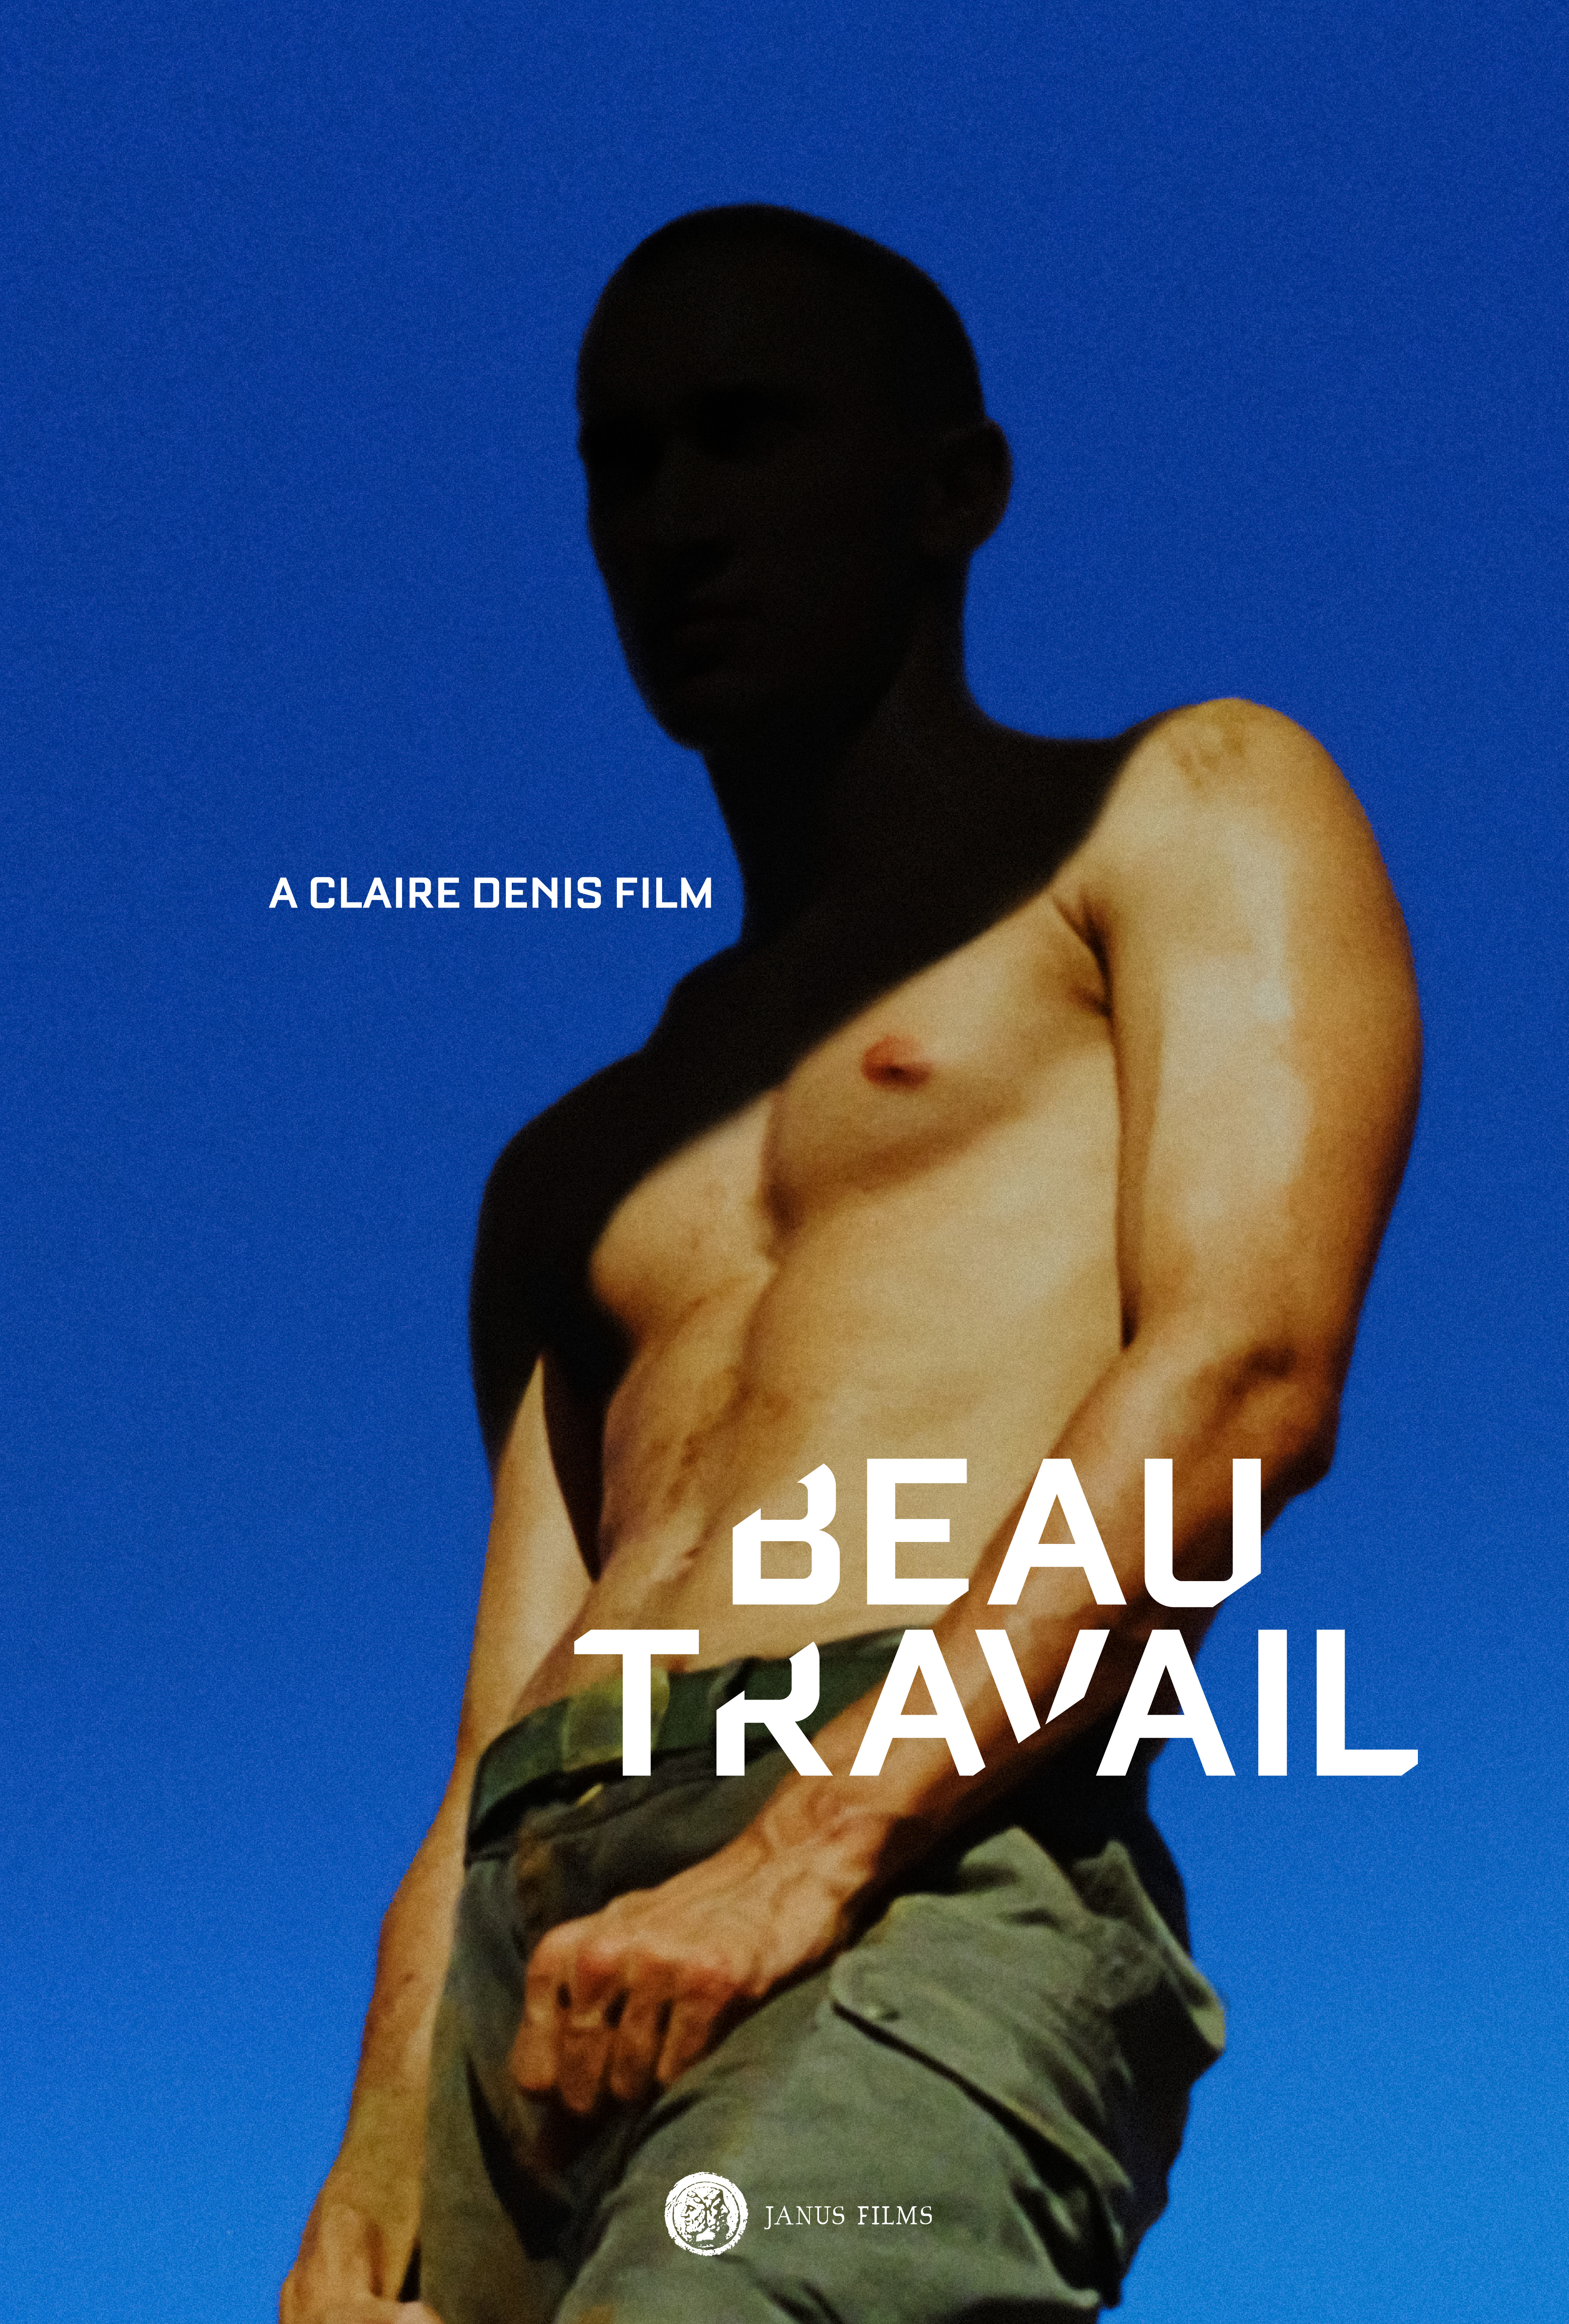 Poster for Beau Travail